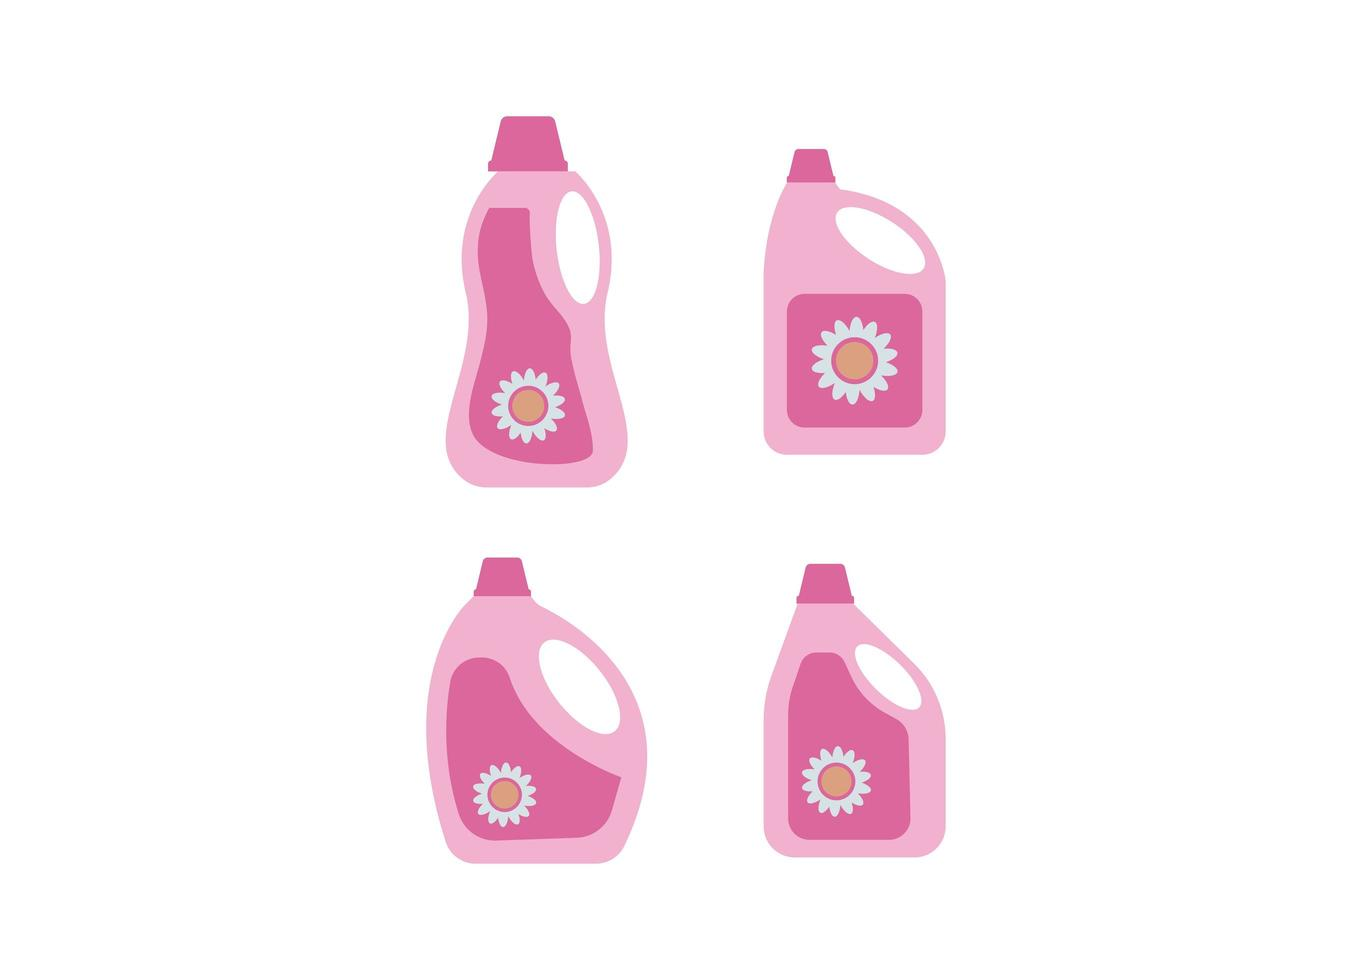 Softener icon design template vector isolated illustration